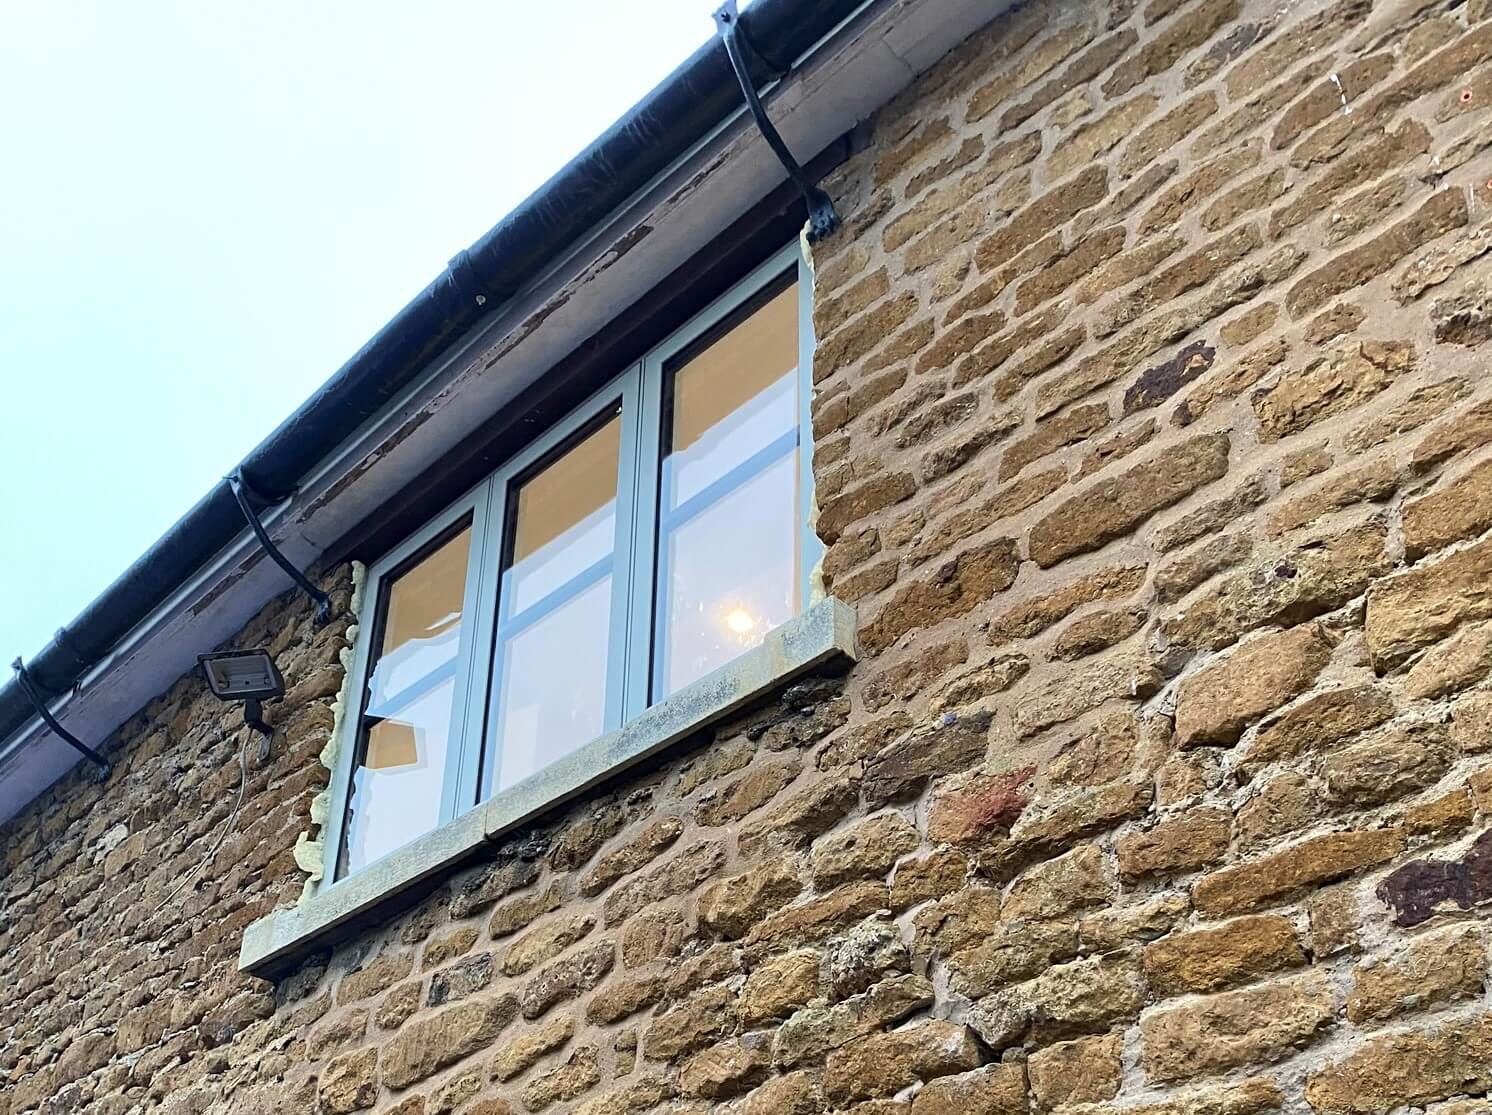 New upstairs window in an old brick wall